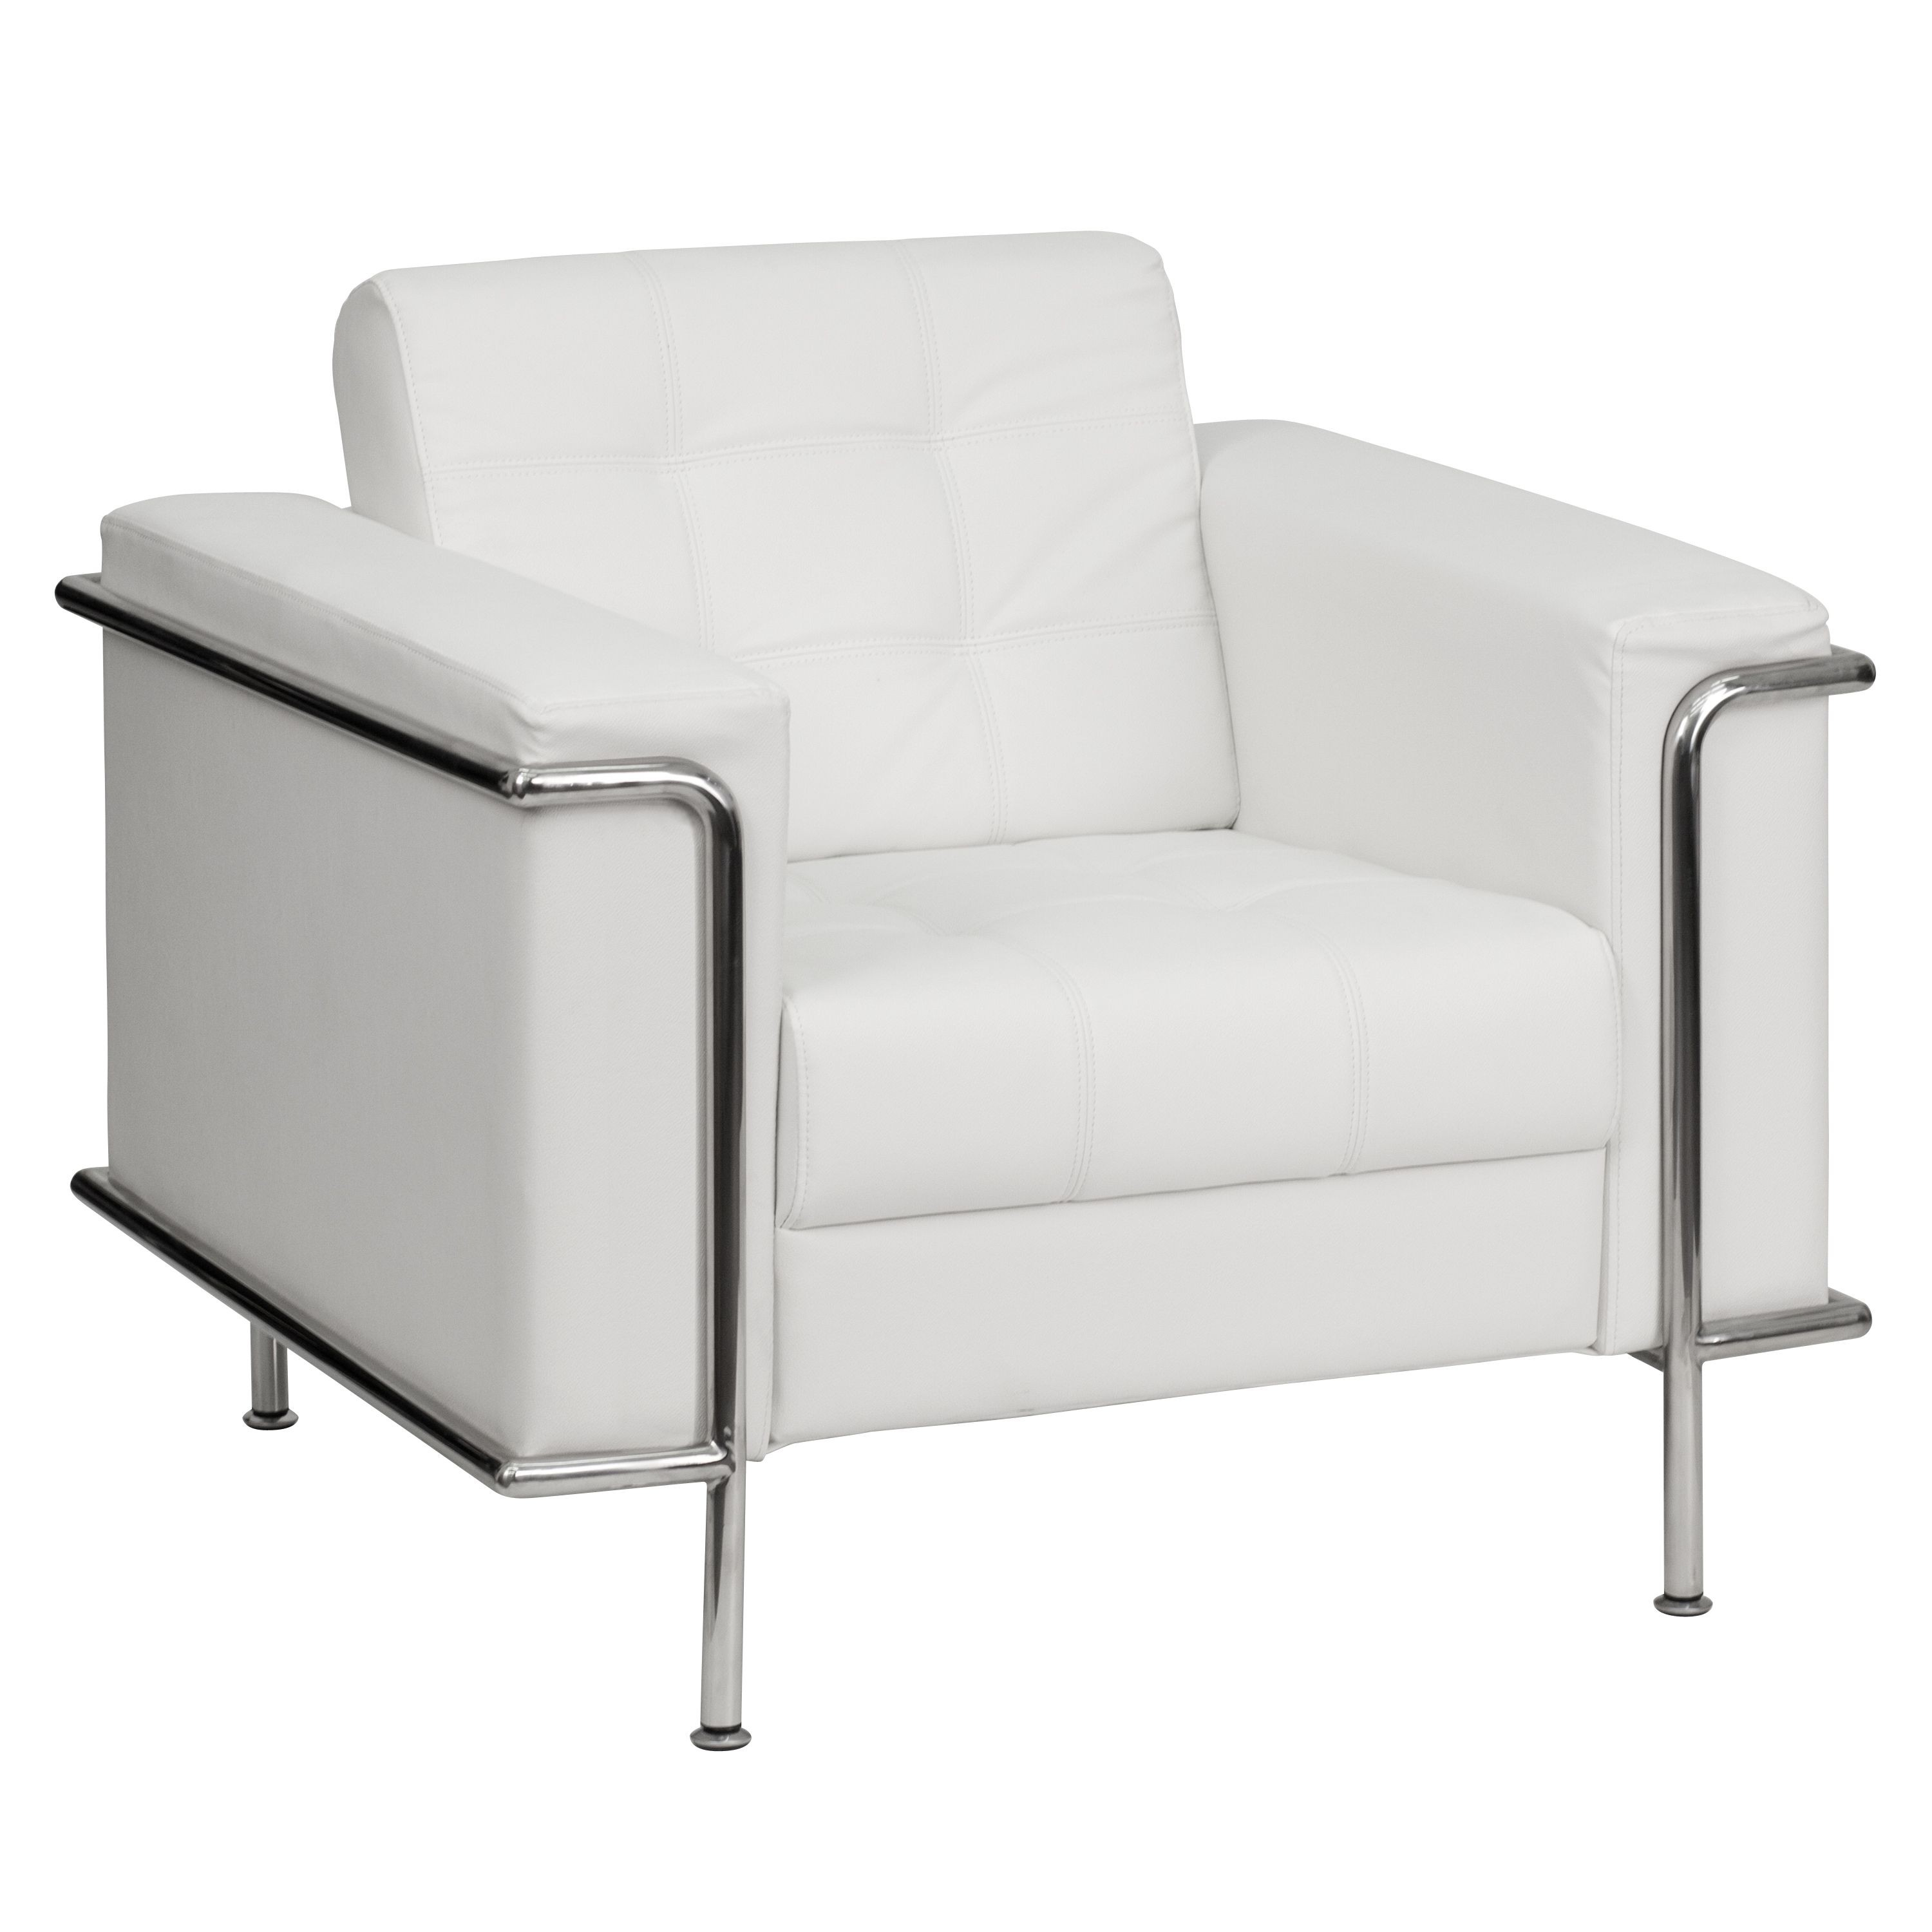 Flash Furniture ZB-LESLEY-8090-CHAIR-WH-GG Lesley Series Contemporary White Leather Chair with Encasing Frame